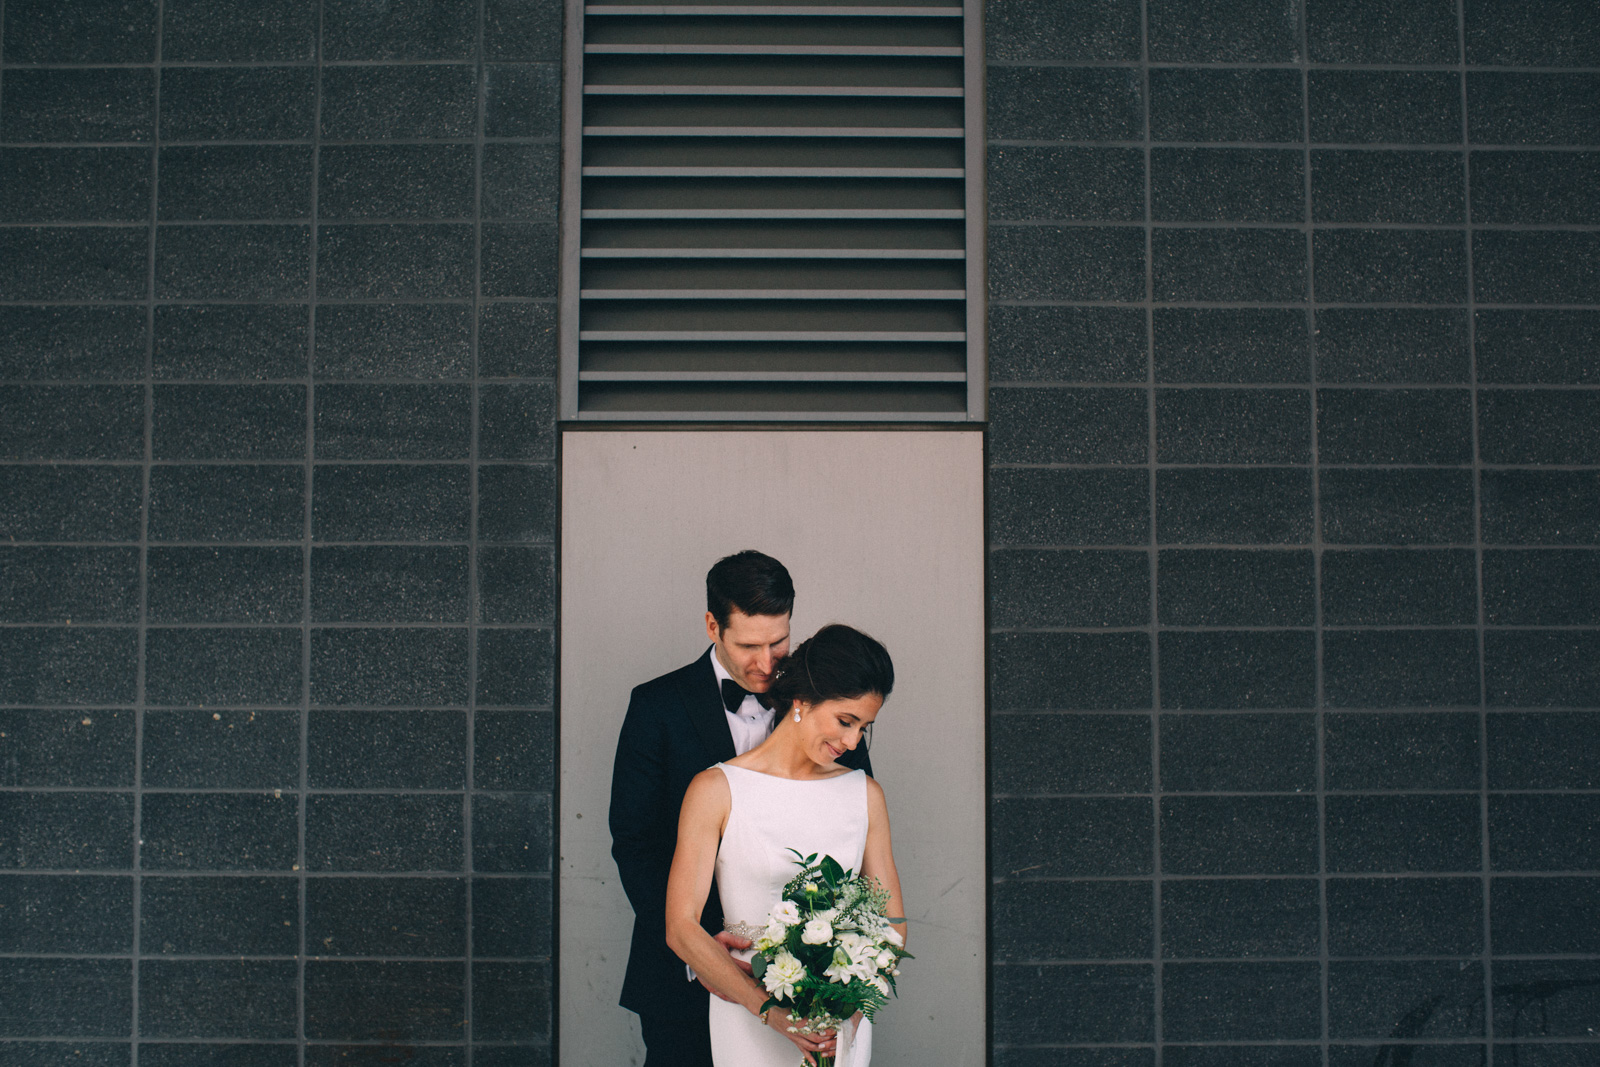 Malaparte-wedding-photography-Toronto-by-Sam-Wong-of-Artanis-Collective_40.jpg